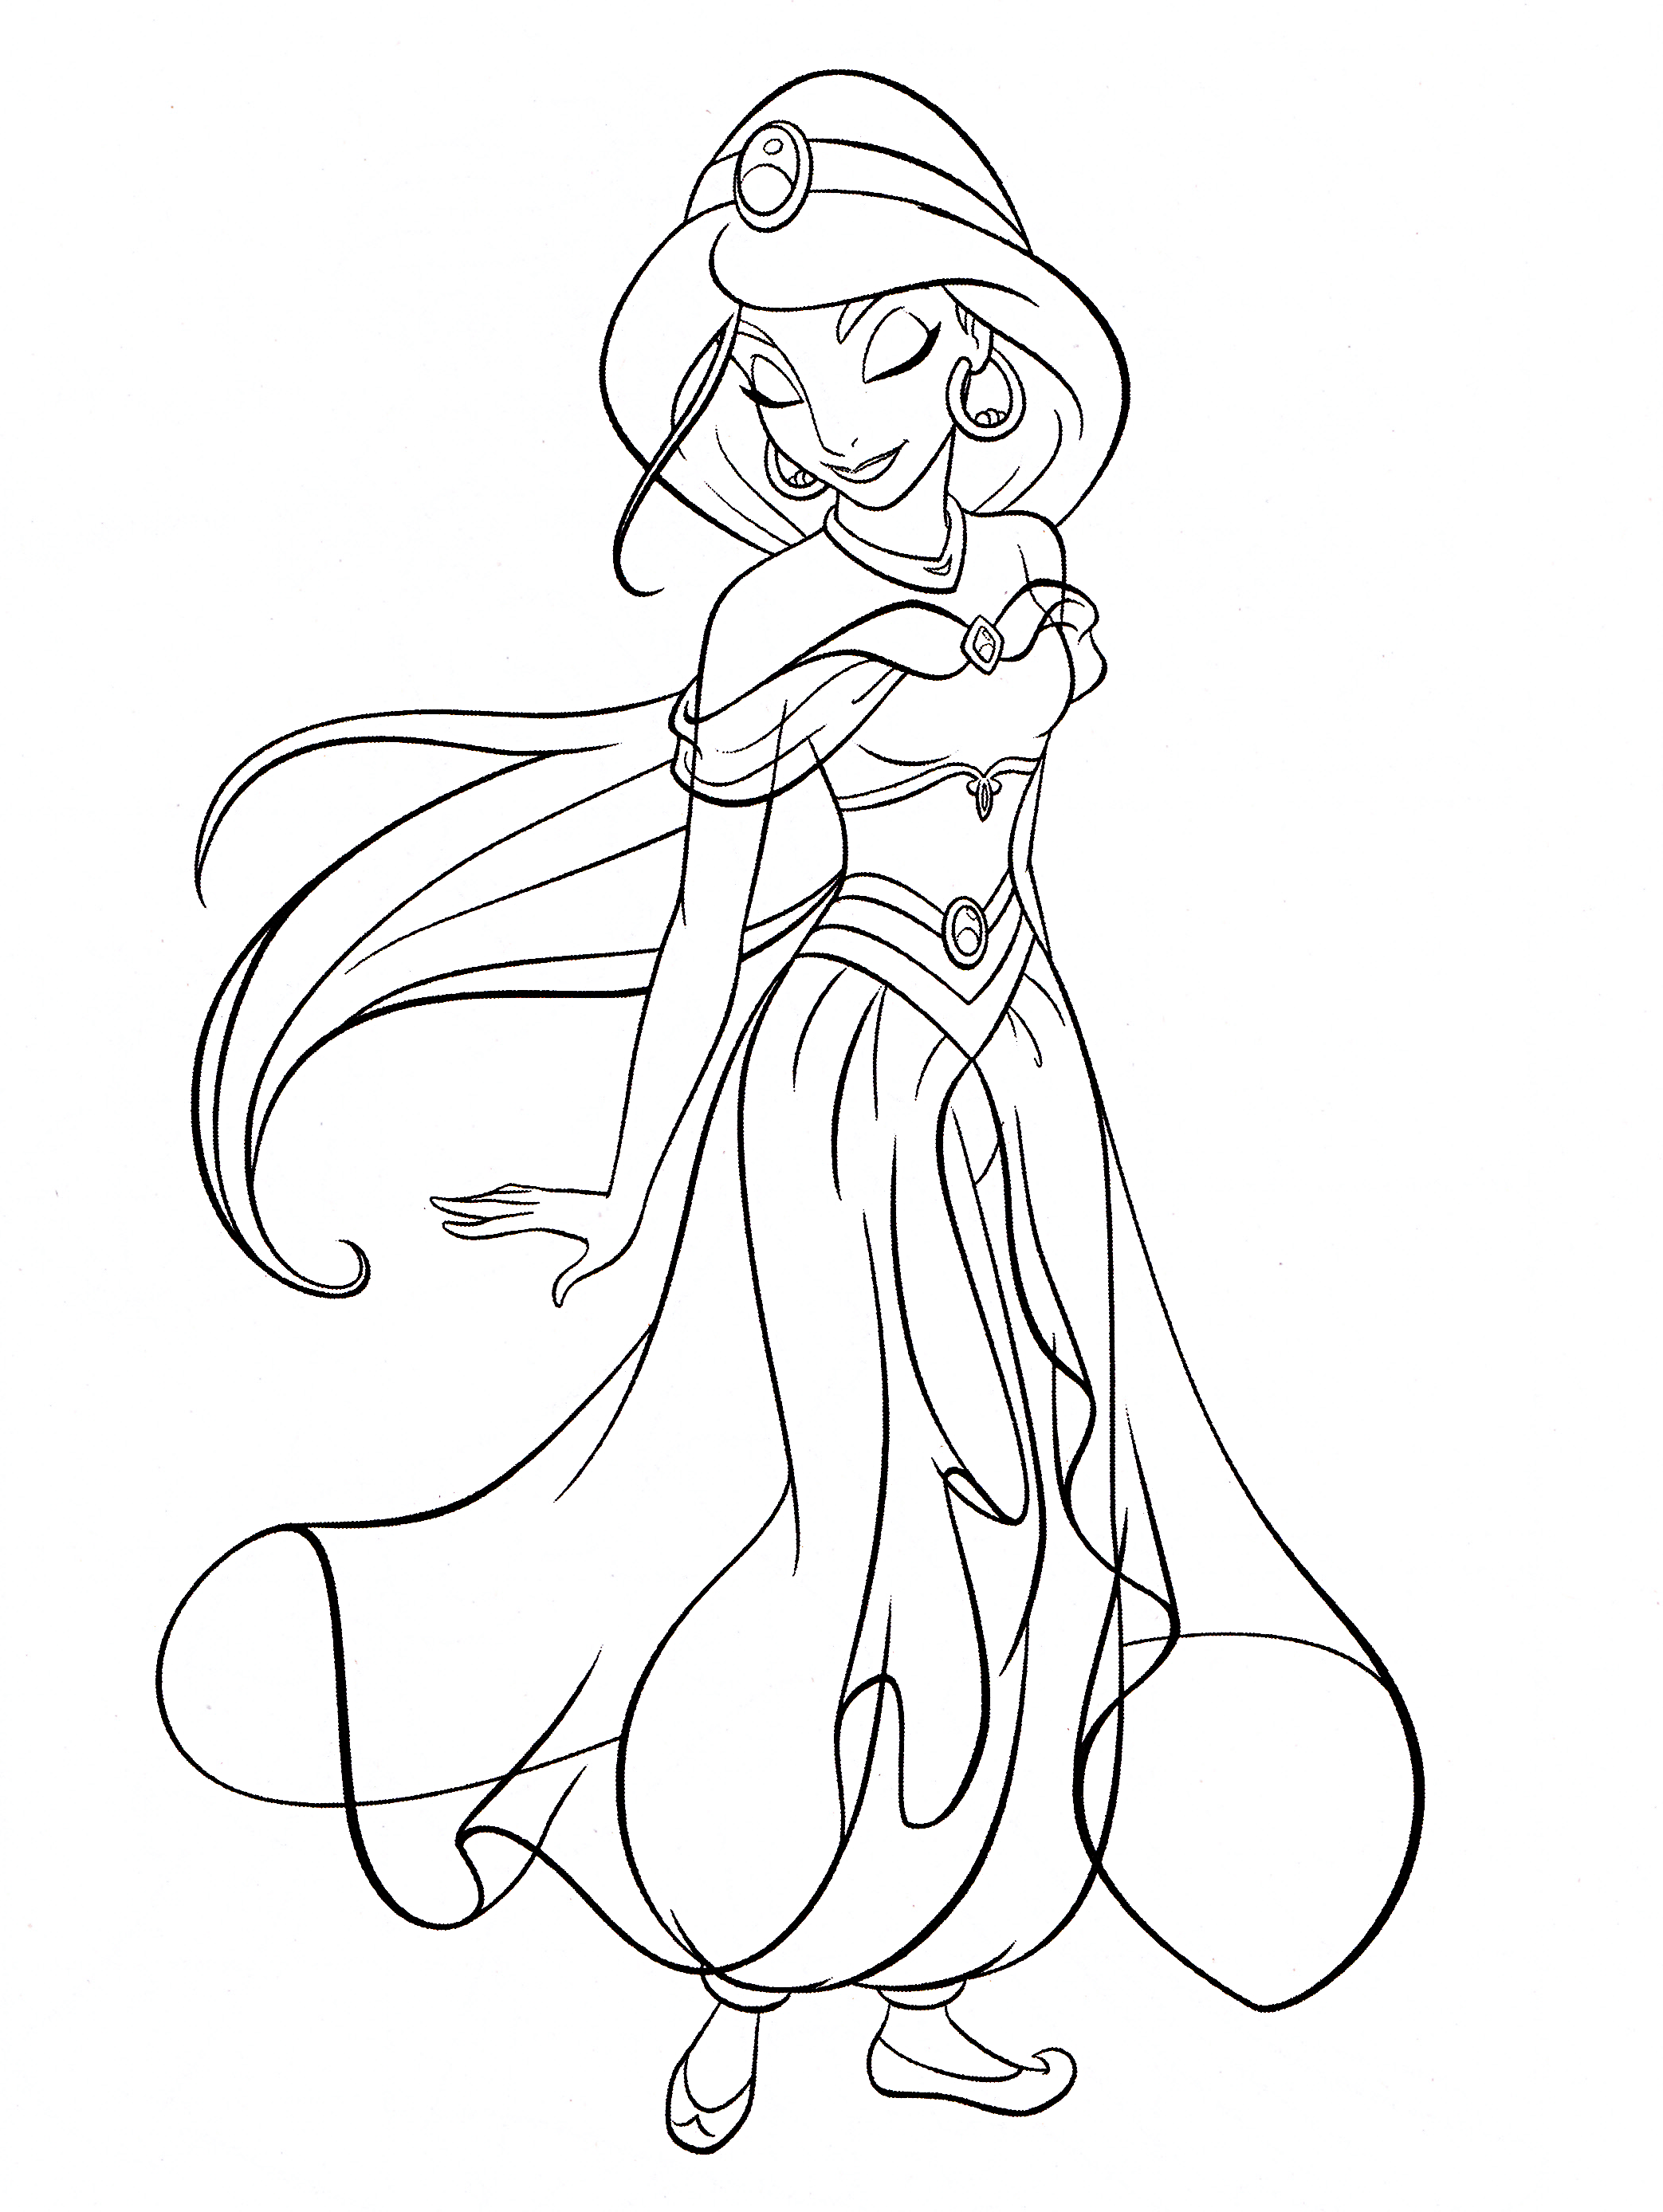 Grab Your New Coloring Pages Jasmine Download Https Gethighit Com New Colorin Disney Princess Coloring Pages Disney Princess Colors Princess Coloring Pages